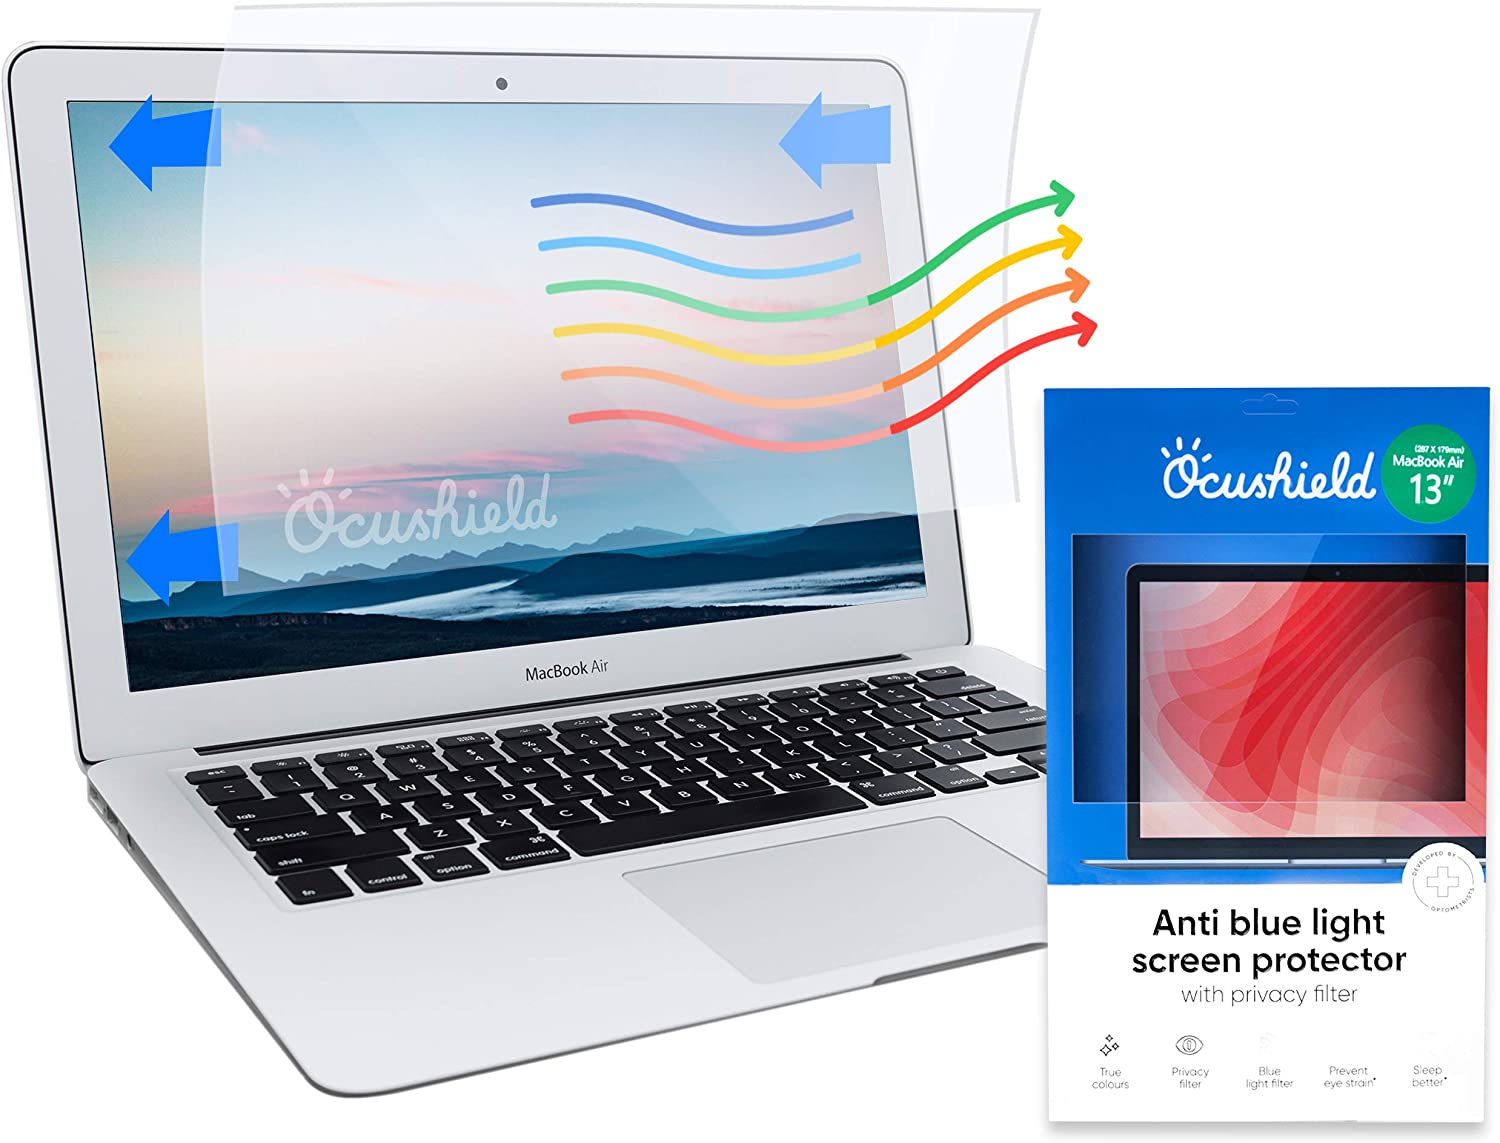 "Ocushield Anti Blue Light Screen Protector for Apple MacBook Pro 15"" - Privacy Filter - Anti-Glare"